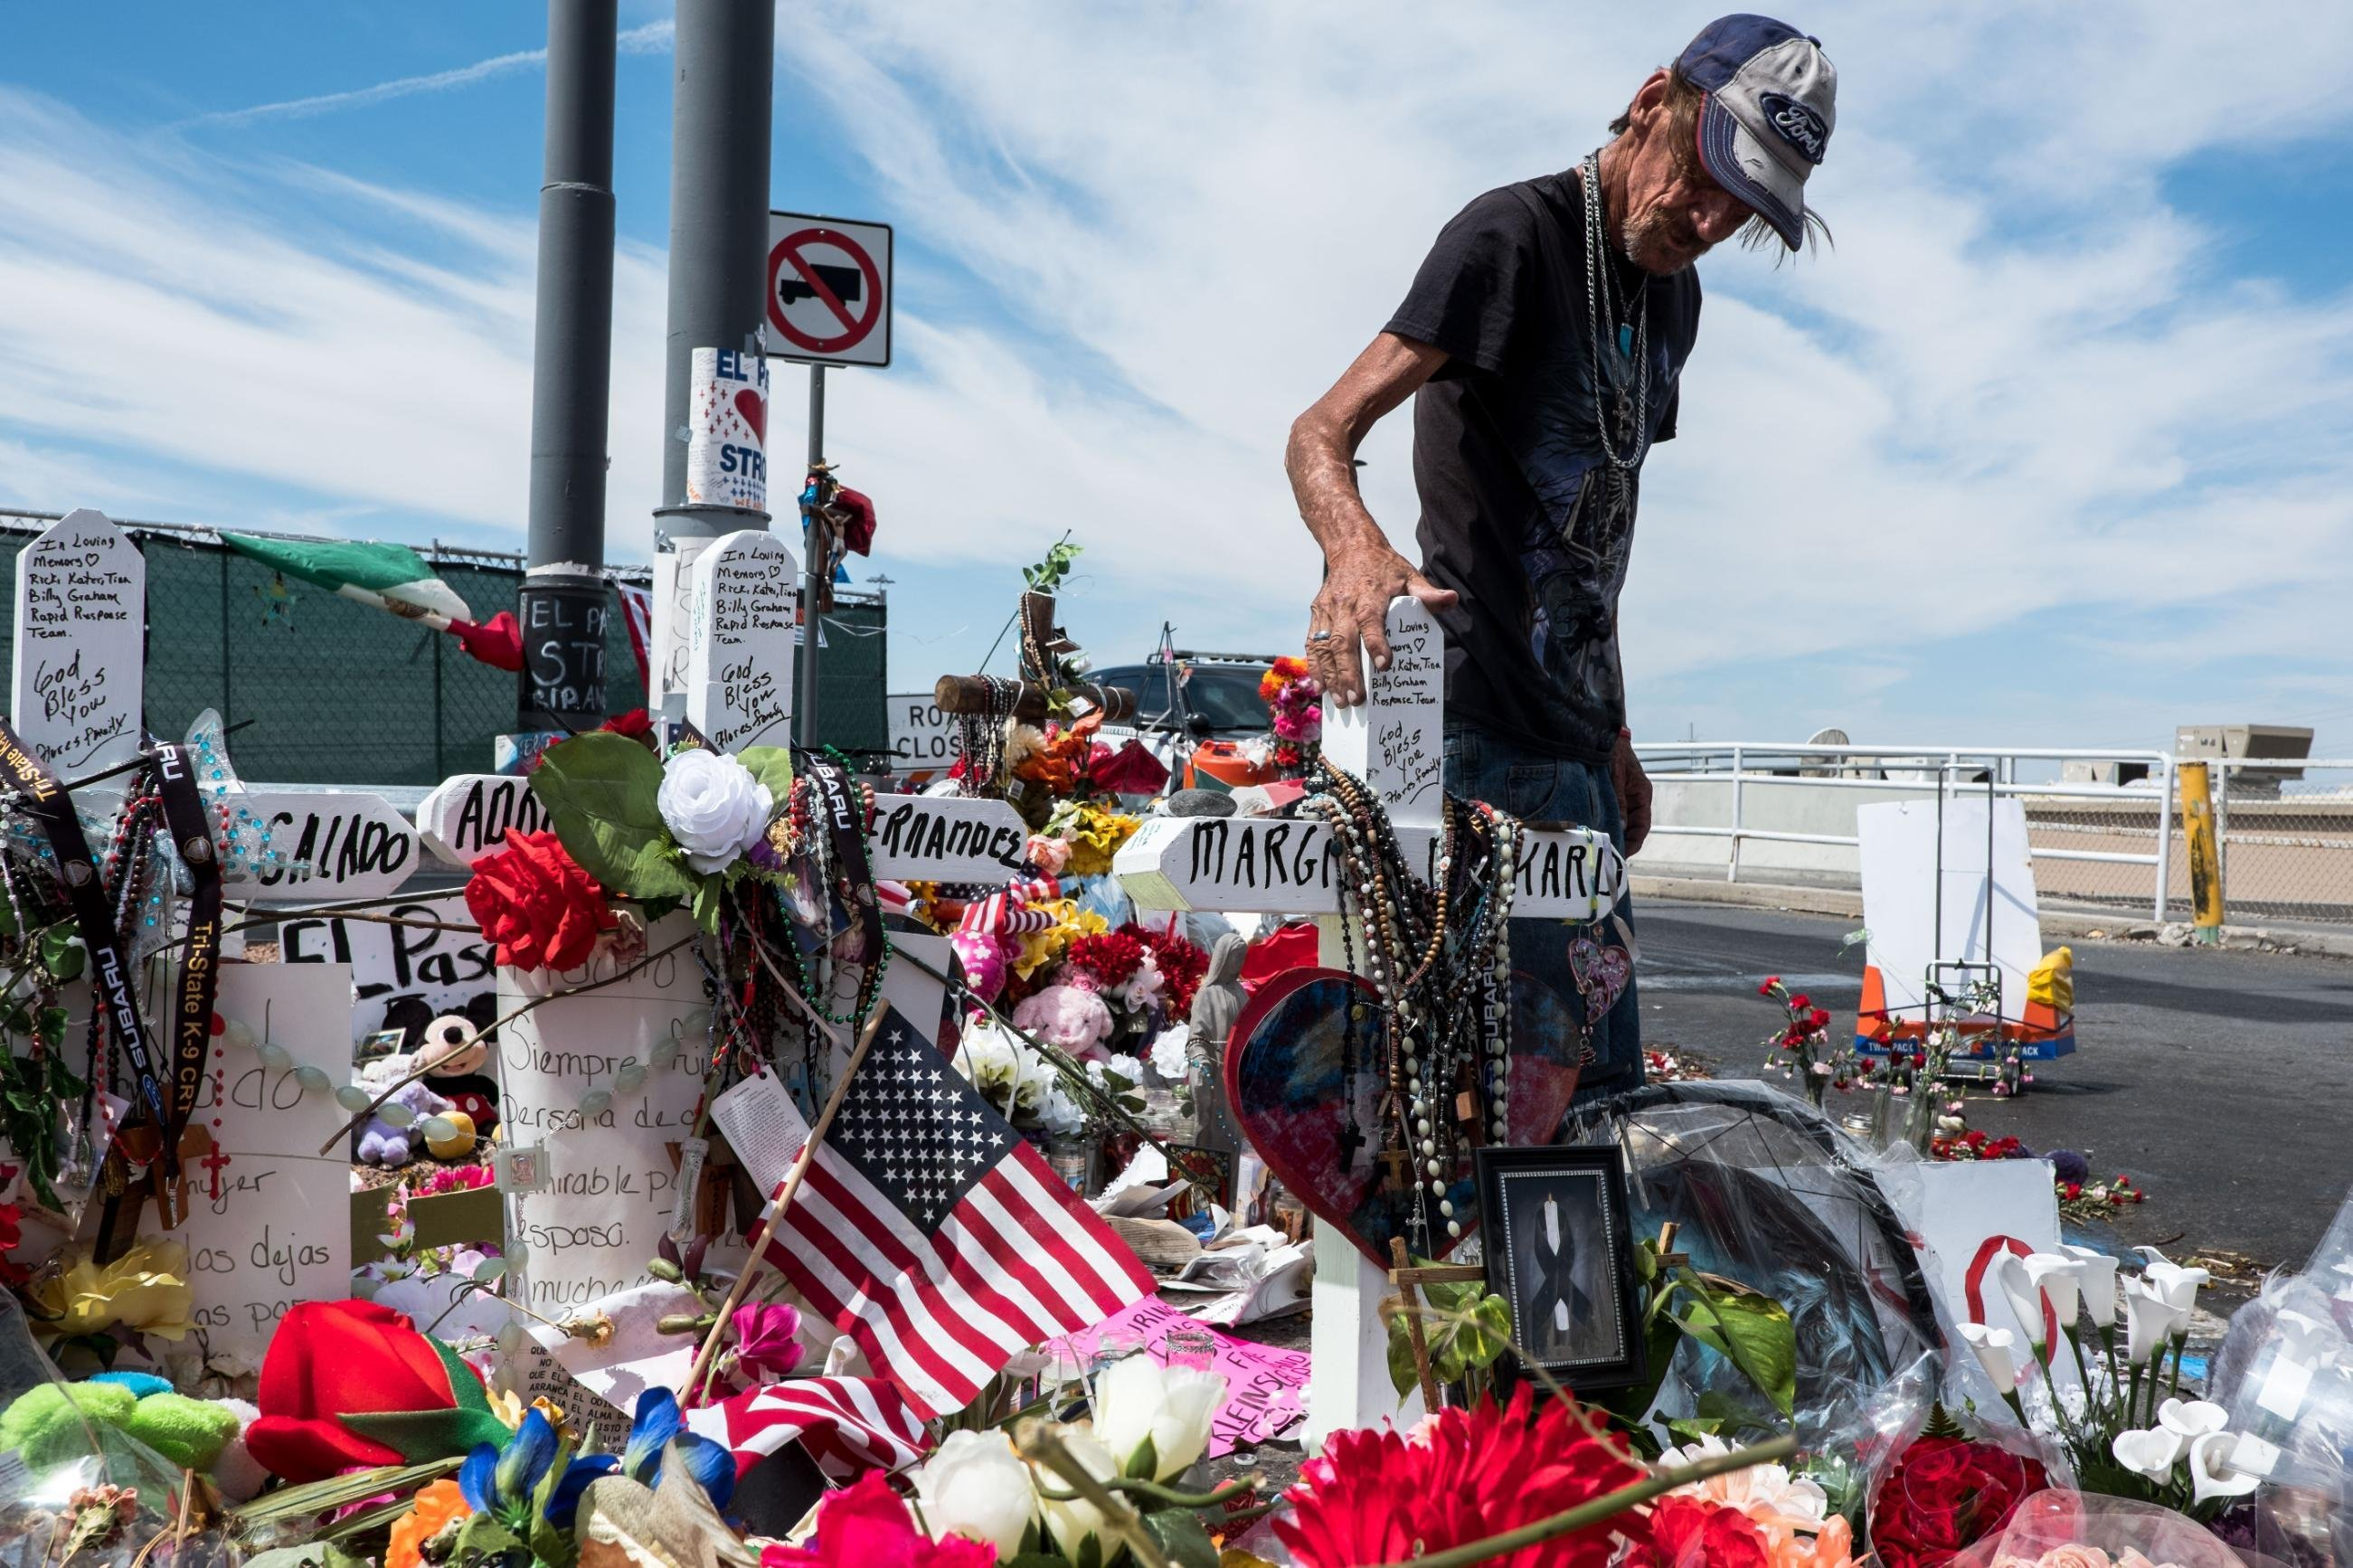 Why El Paso and other recent attacks in the US are modern-day lynchings